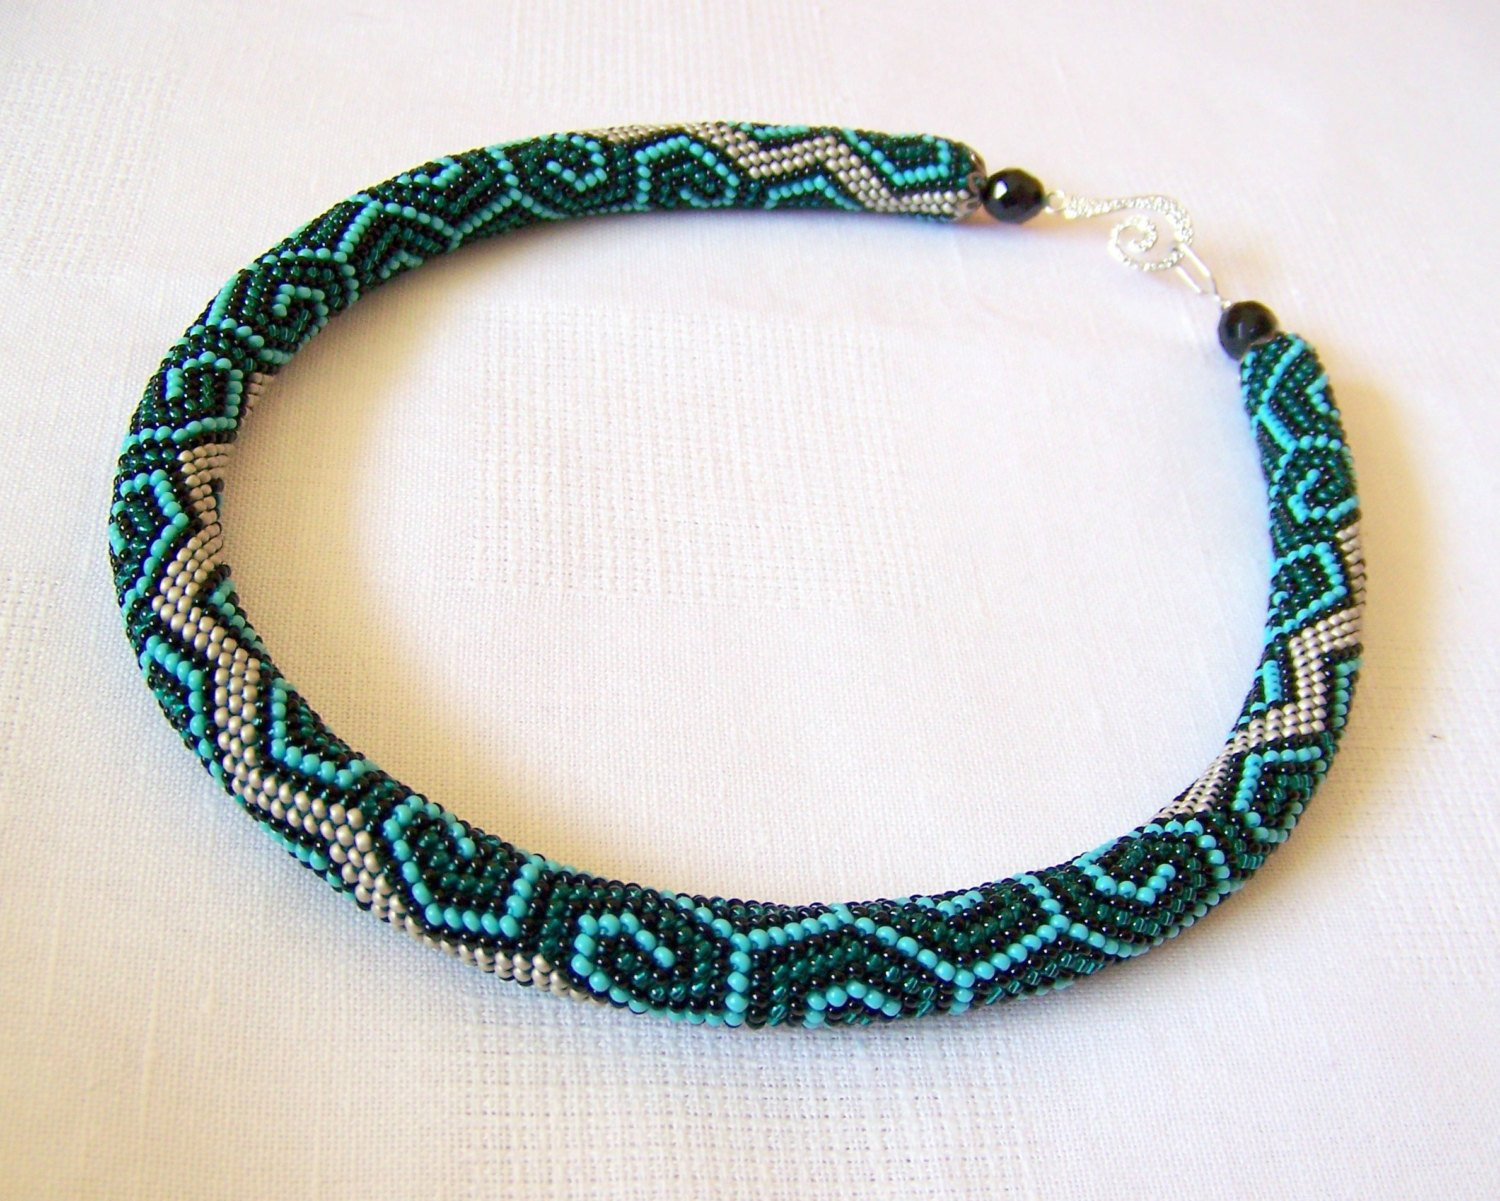 Lovely Bead Crochet Necklace with Geometric Pattern Beaded Rope Bead Crochet Of Fresh 42 Pics Bead Crochet